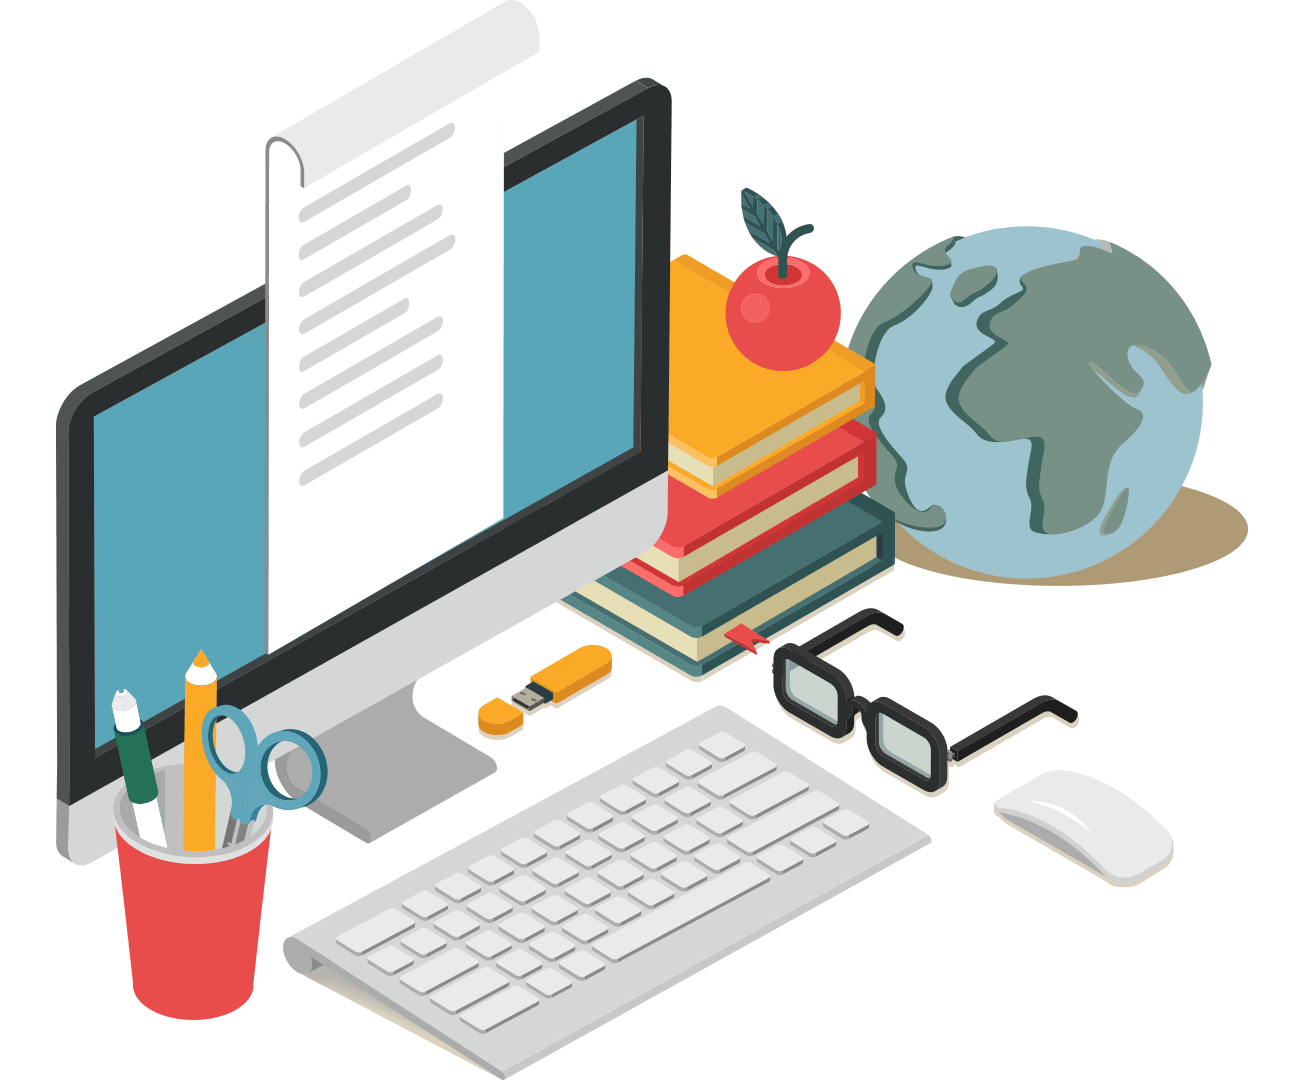 online copywriting Copywriting is one of the most essential elements of effective online marketing copywriting is the art and science of strategically delivering words (whether written or spoken) that get people to take some form of action.